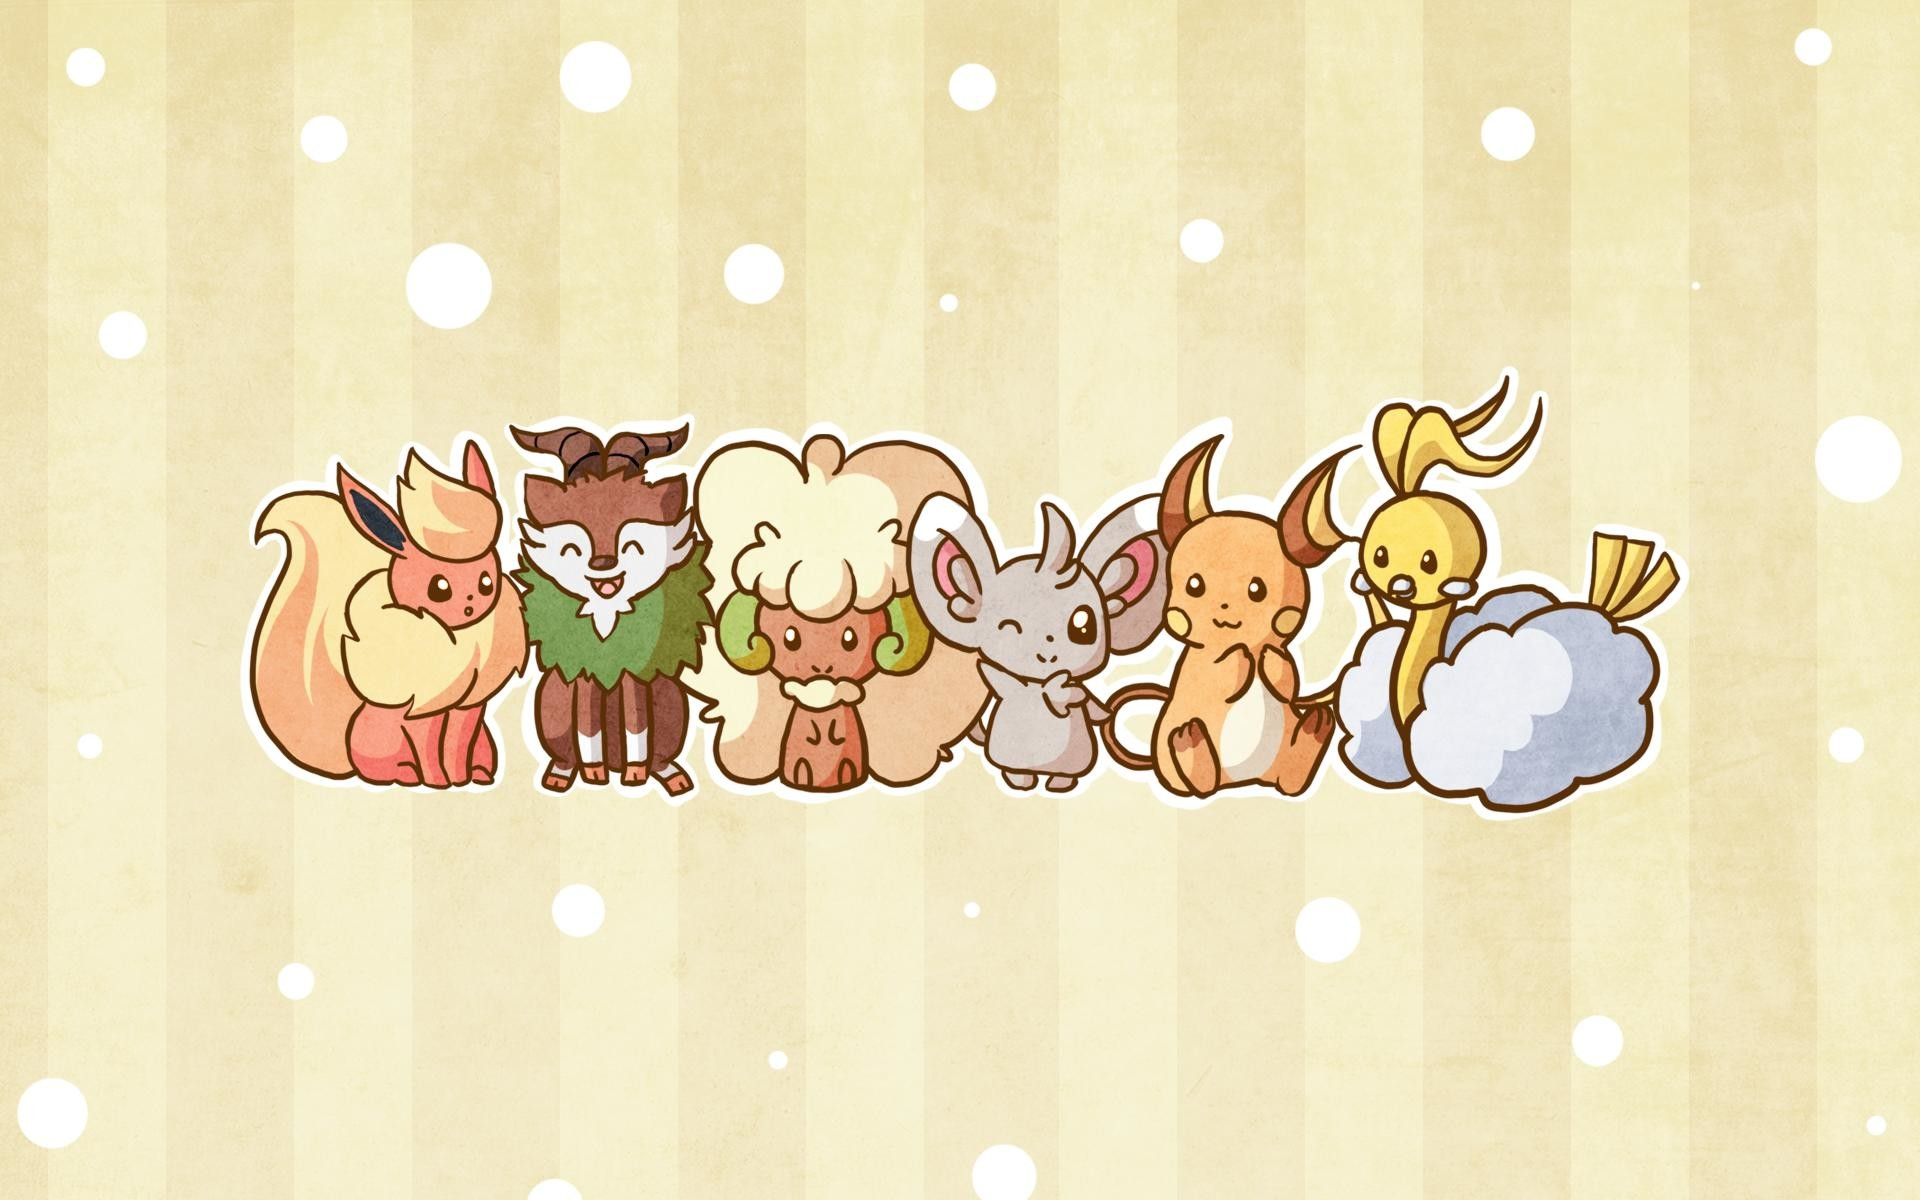 1920x1200 [ART] My cute and fluffy team wallpaper!